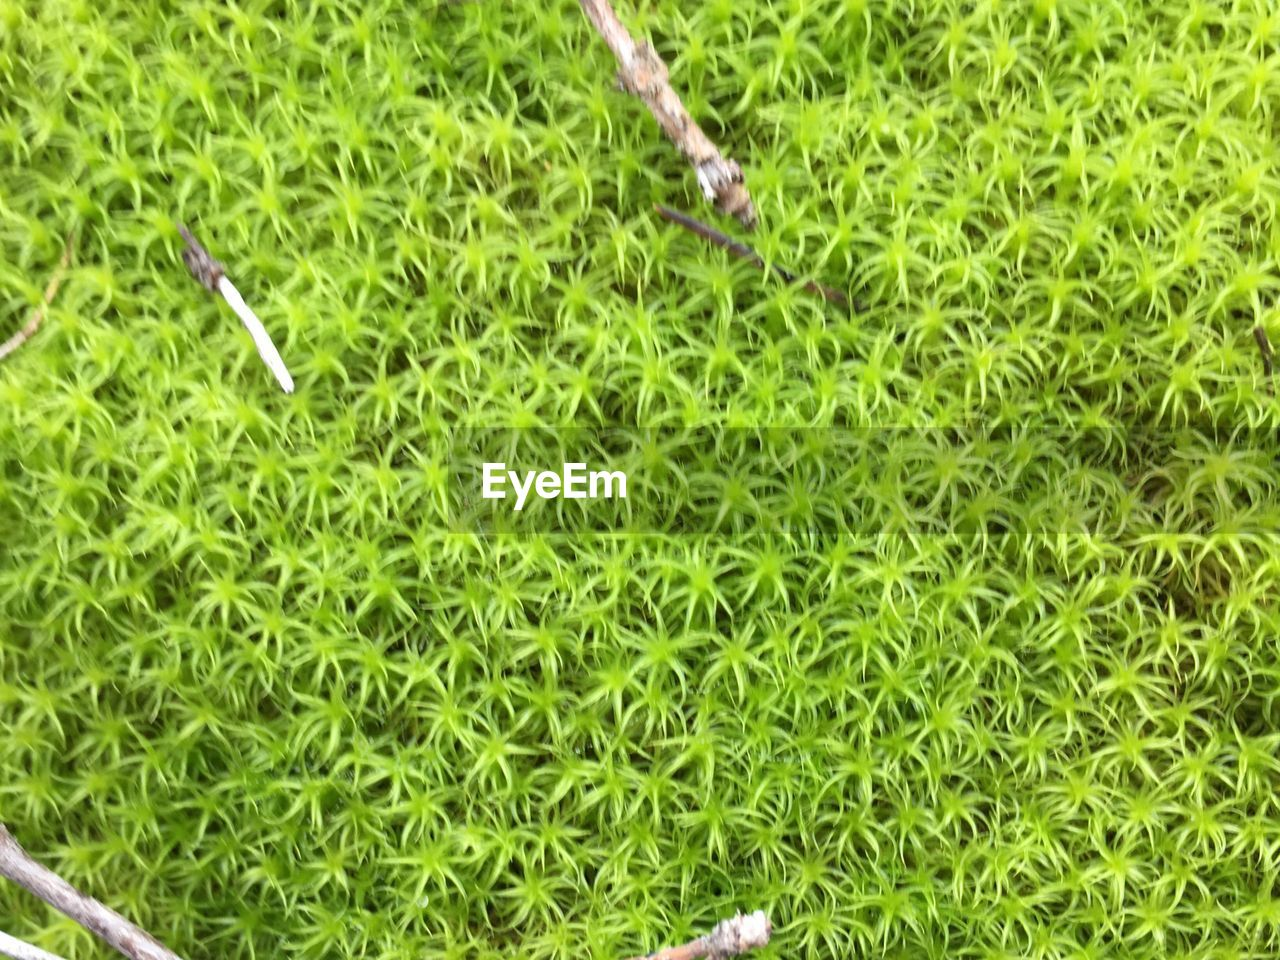 grass, green color, high angle view, animal themes, nature, no people, day, growth, outdoors, plant, food, close-up, freshness